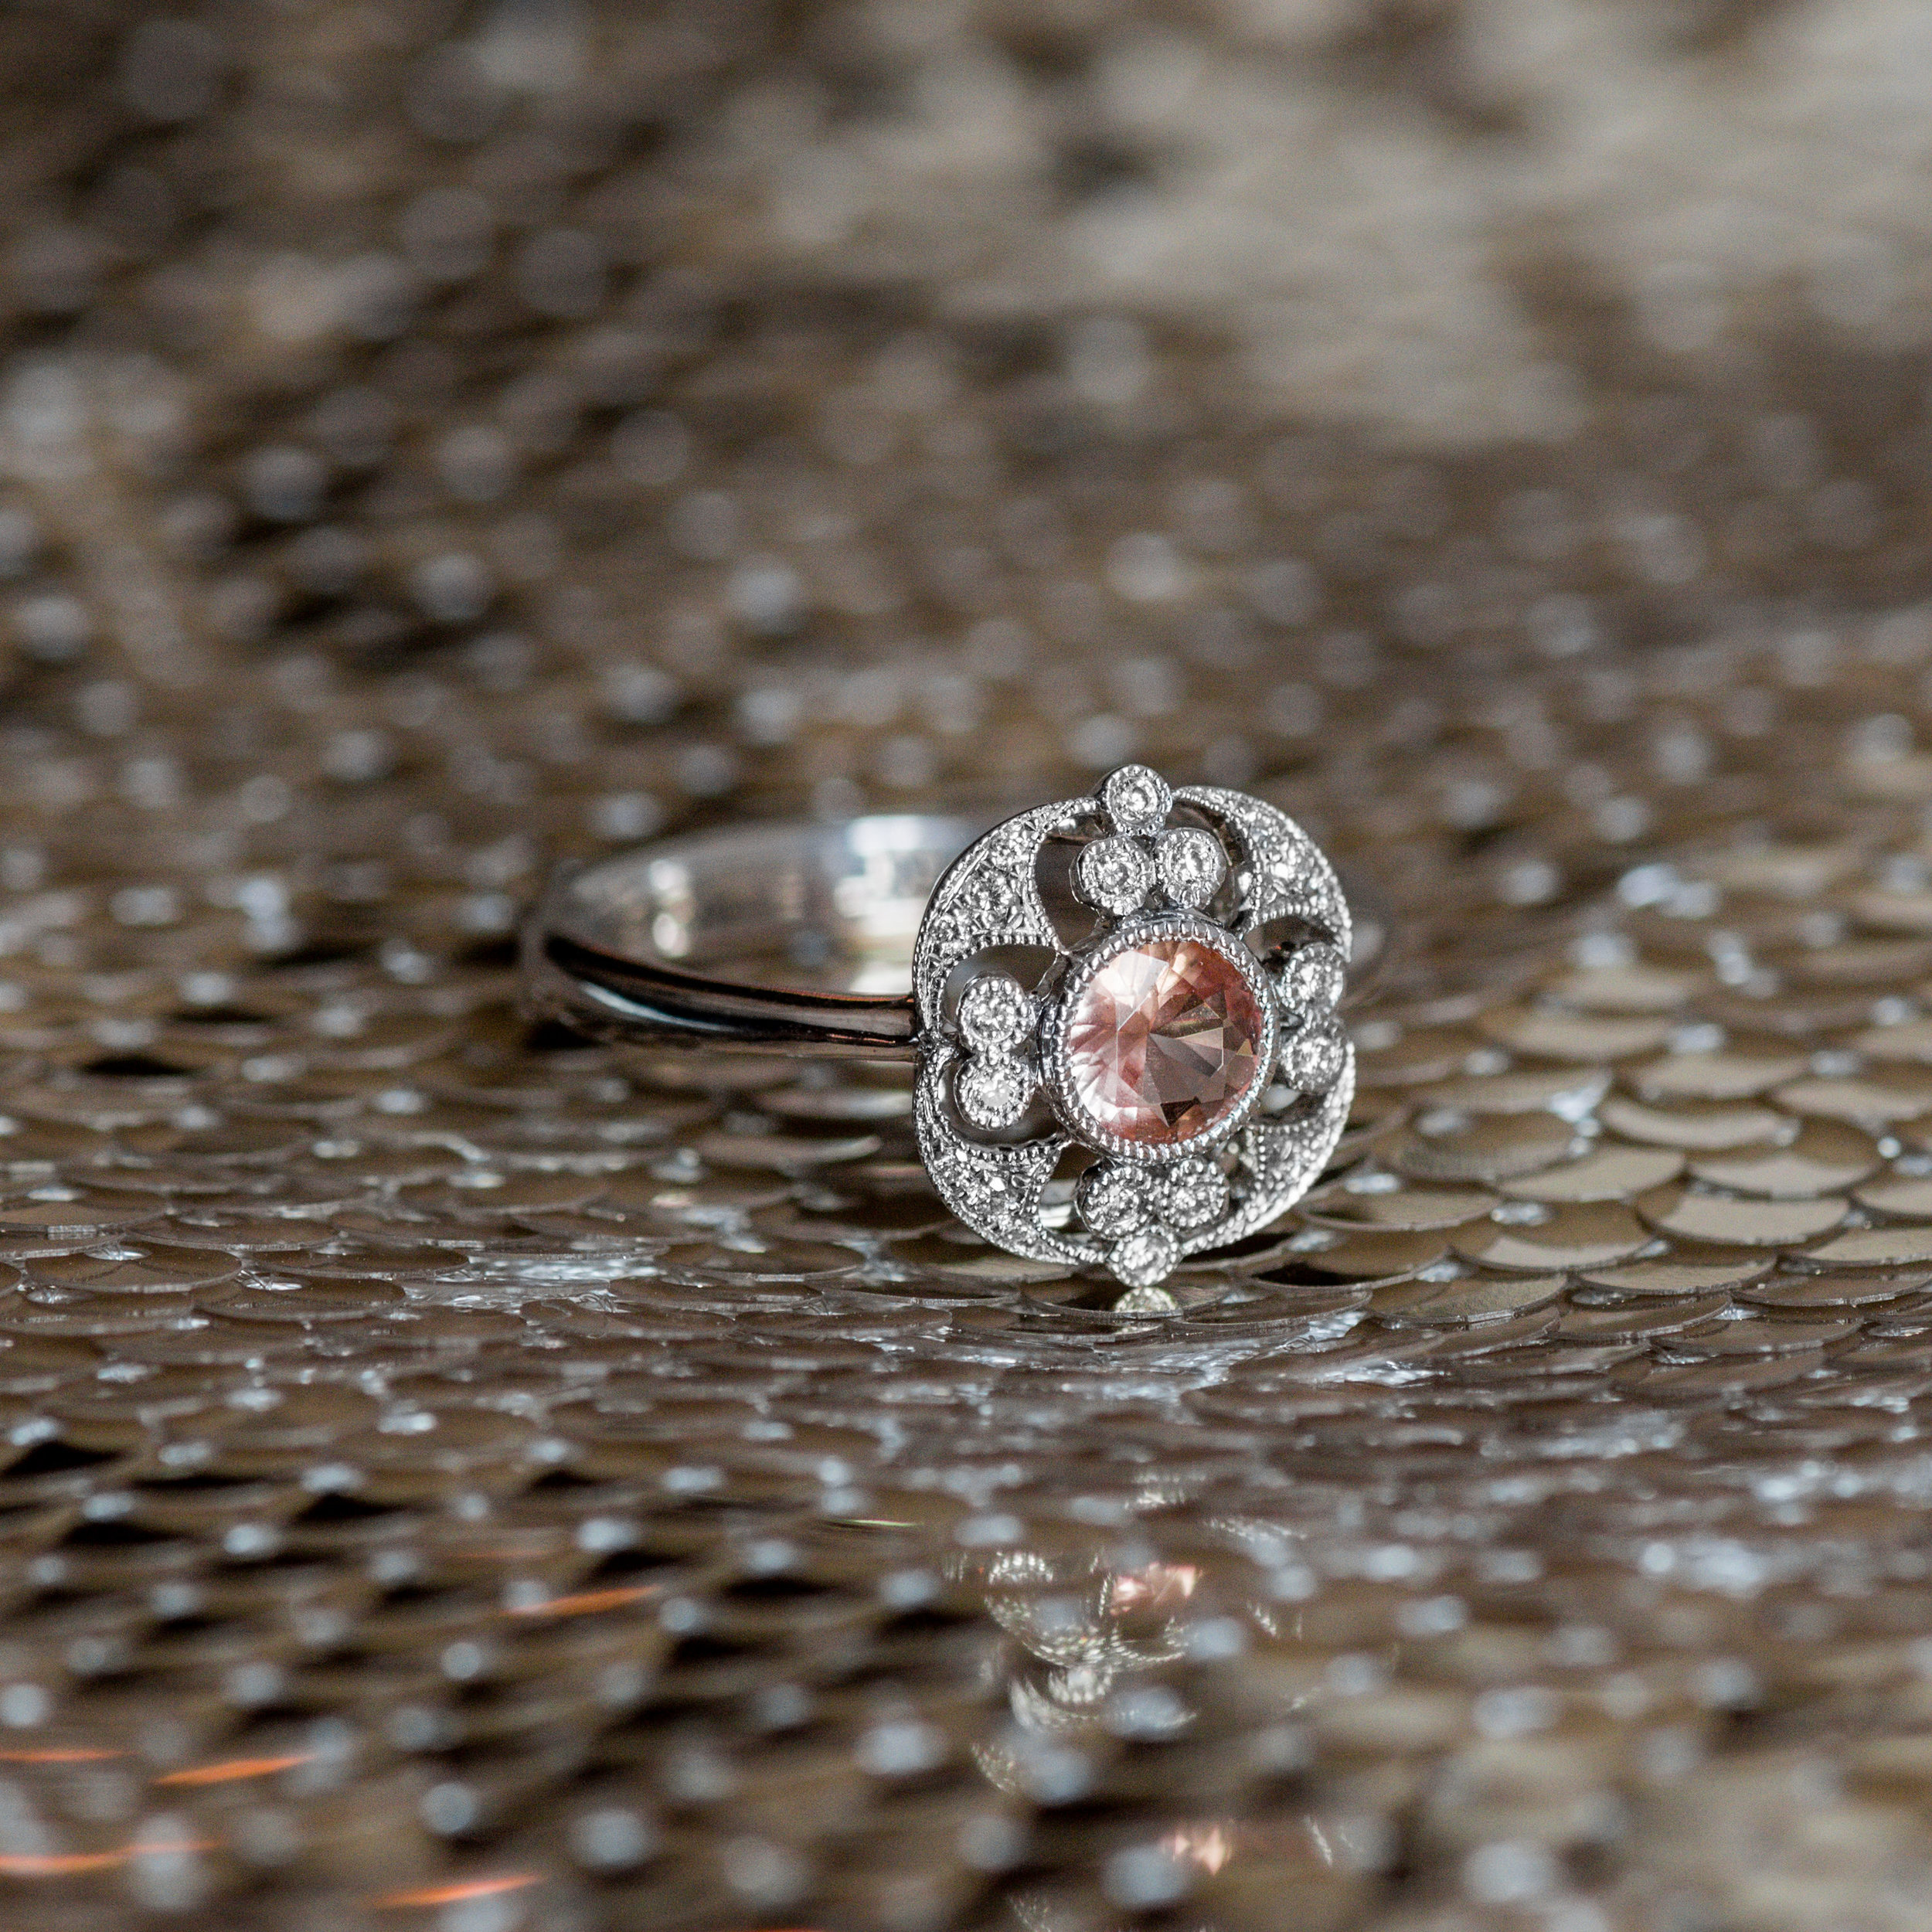 Asking for a friend....If you wear an Imperial Topaz, does that make you a Queen? 👑 . Shop this regal Imperial Topaz ring  HERE !